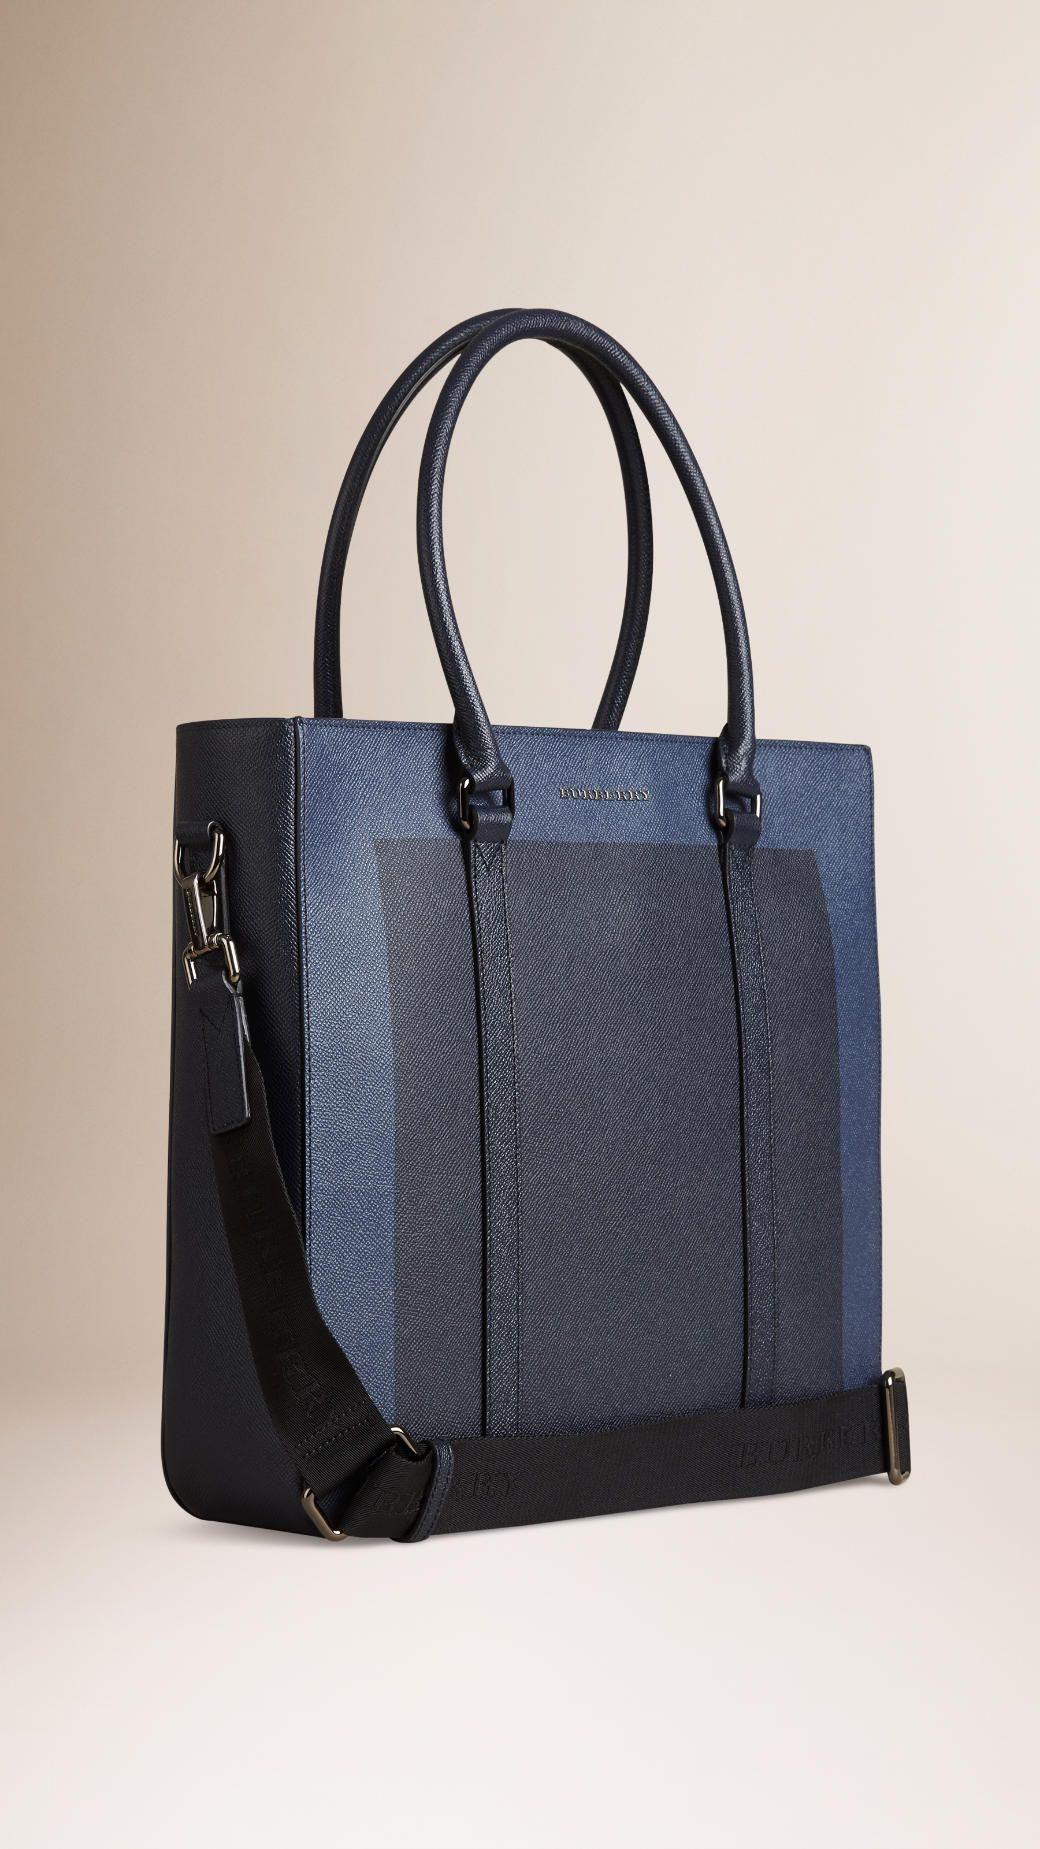 61624a06657 London Leather Tote Bag Navy   Burberry - would be perfect for holding all  my tea